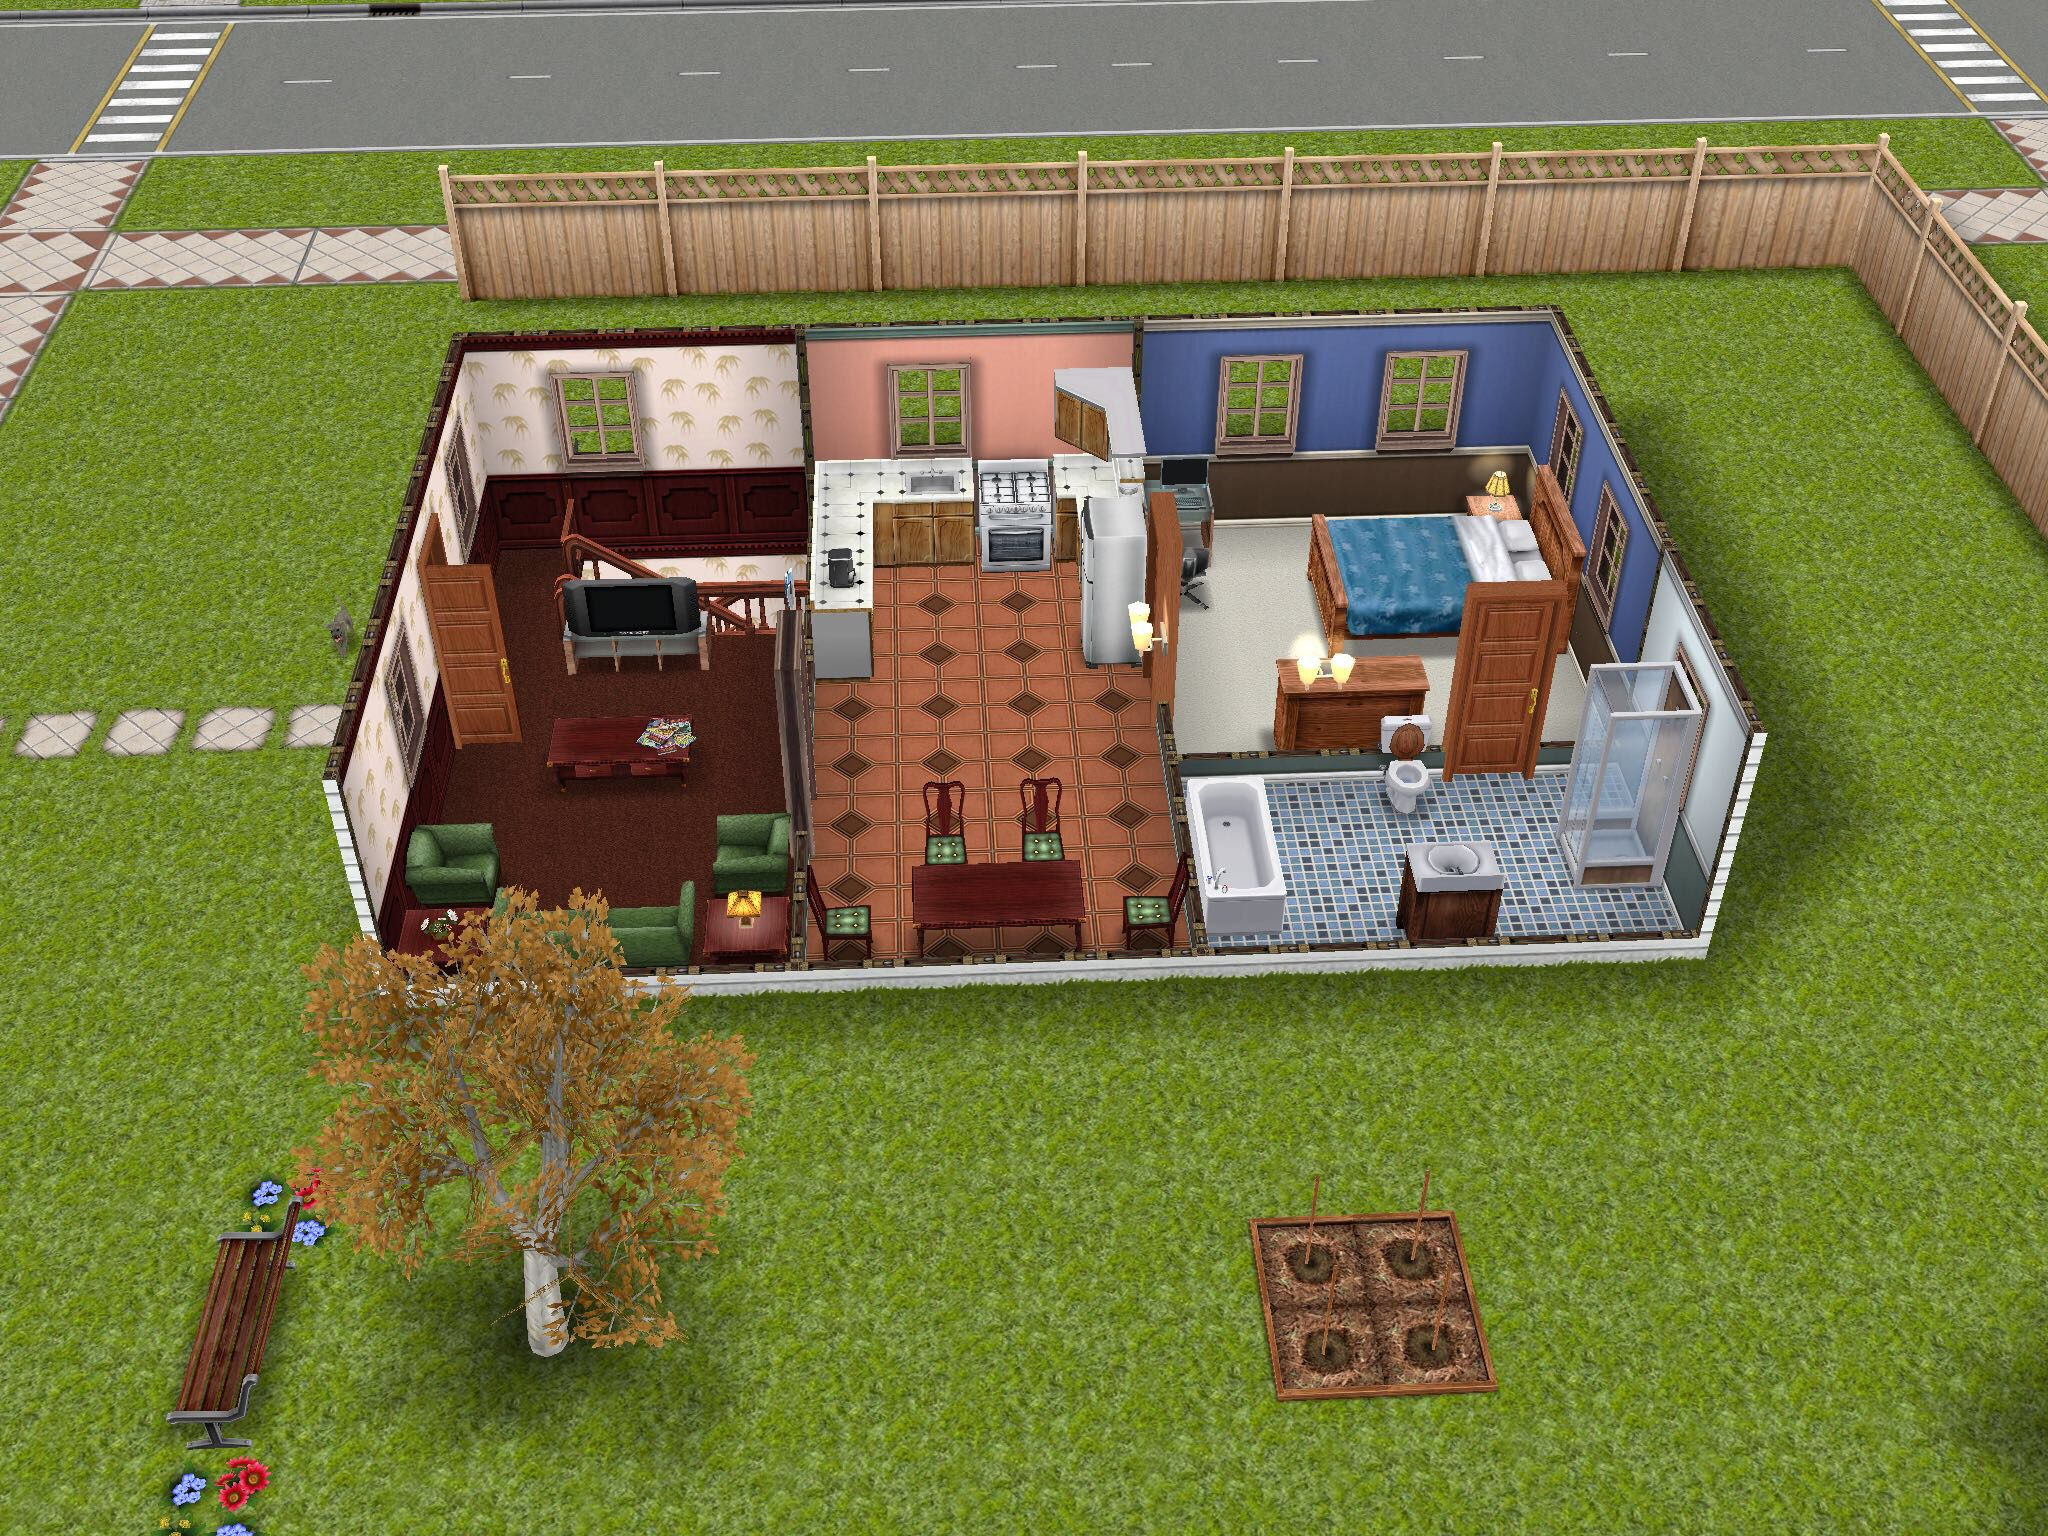 Sims freeplay house  theme inspired by one bedroom home. House 65  Harry Potters magic castle  basement  sims  simsfreeplay